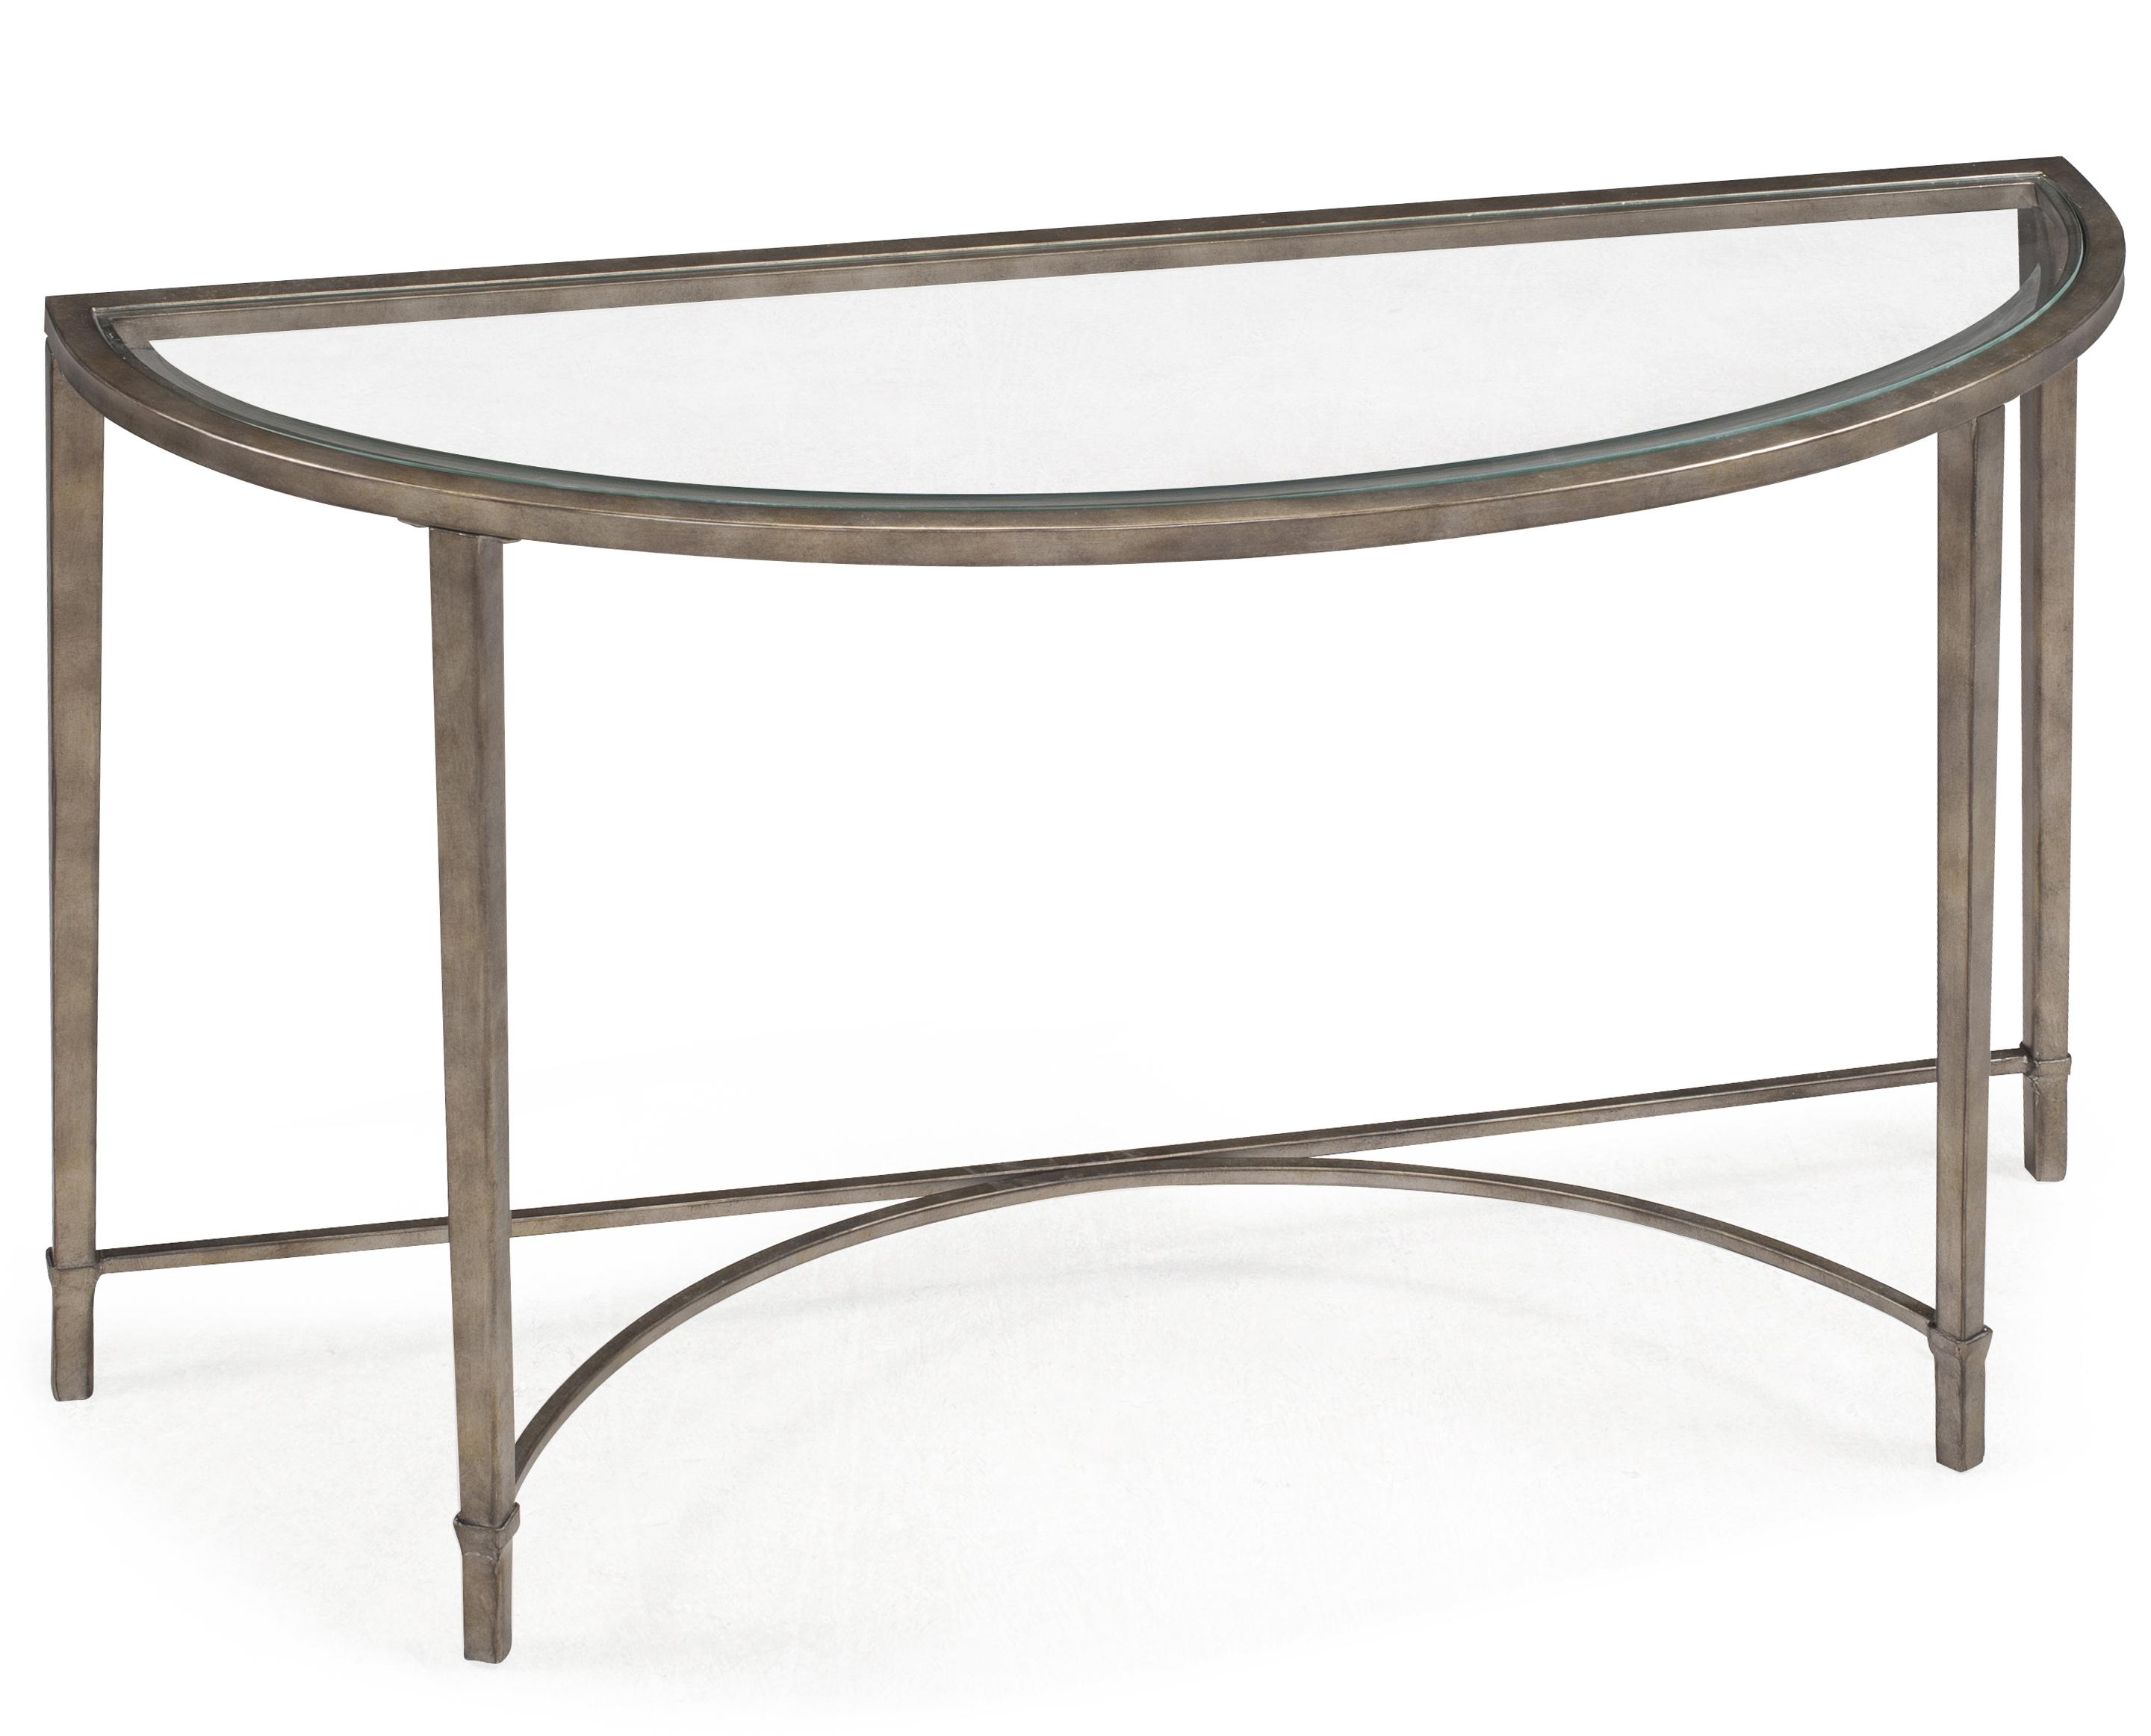 glass tables metal and console table pine elegant sofa shelf accent end chrome with barn door buffet crystal drawer knobs small living room decorating ideas mini lamps diy coffee